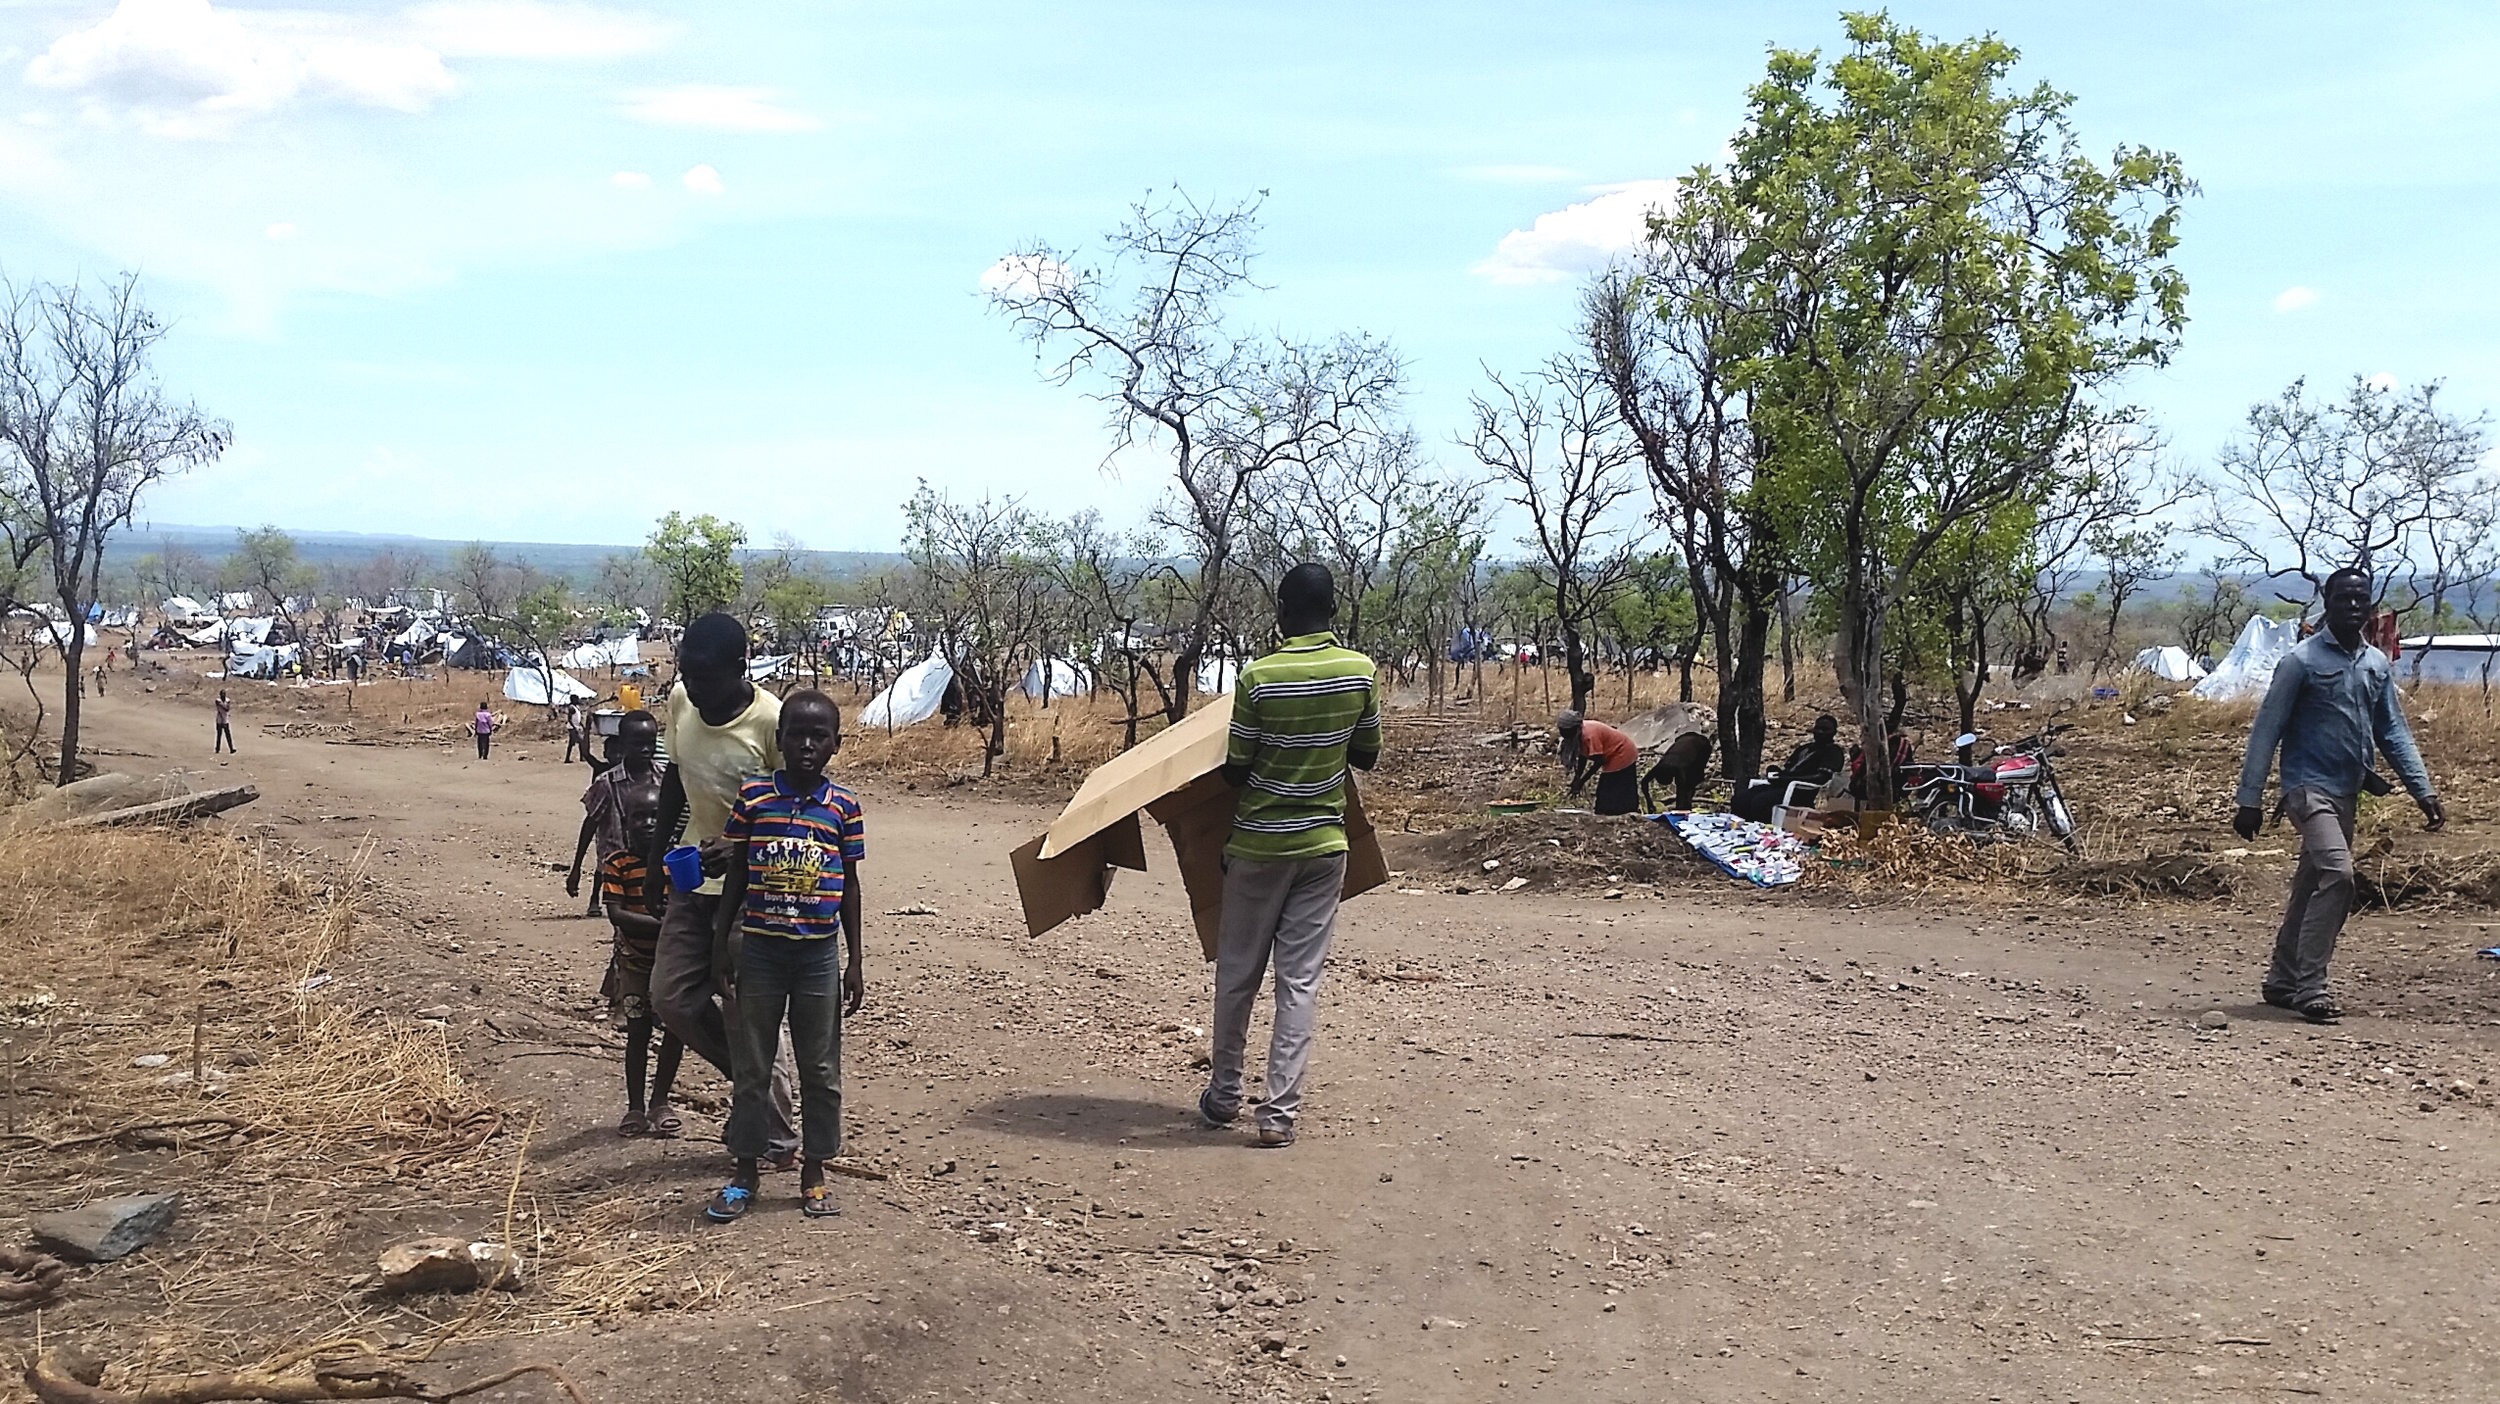 Refugees walk the dusty roads at Imvepi Camp in northern Uganda.